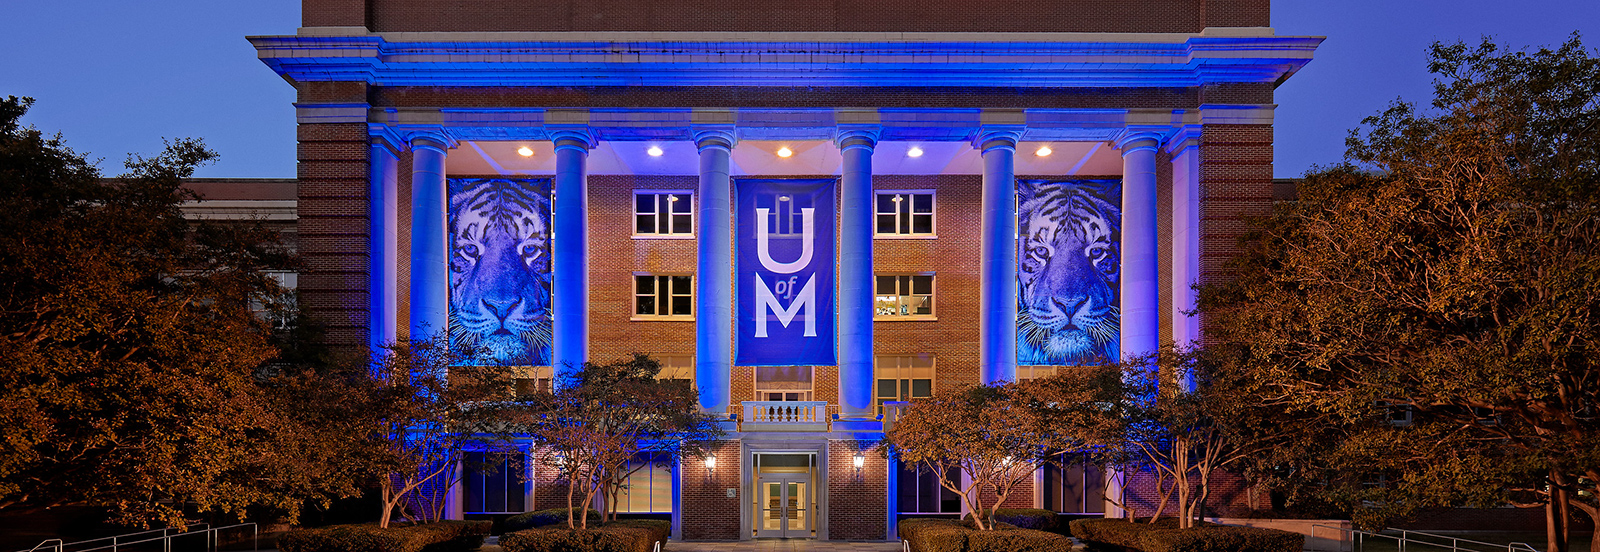 UofM Tiger Sculpture